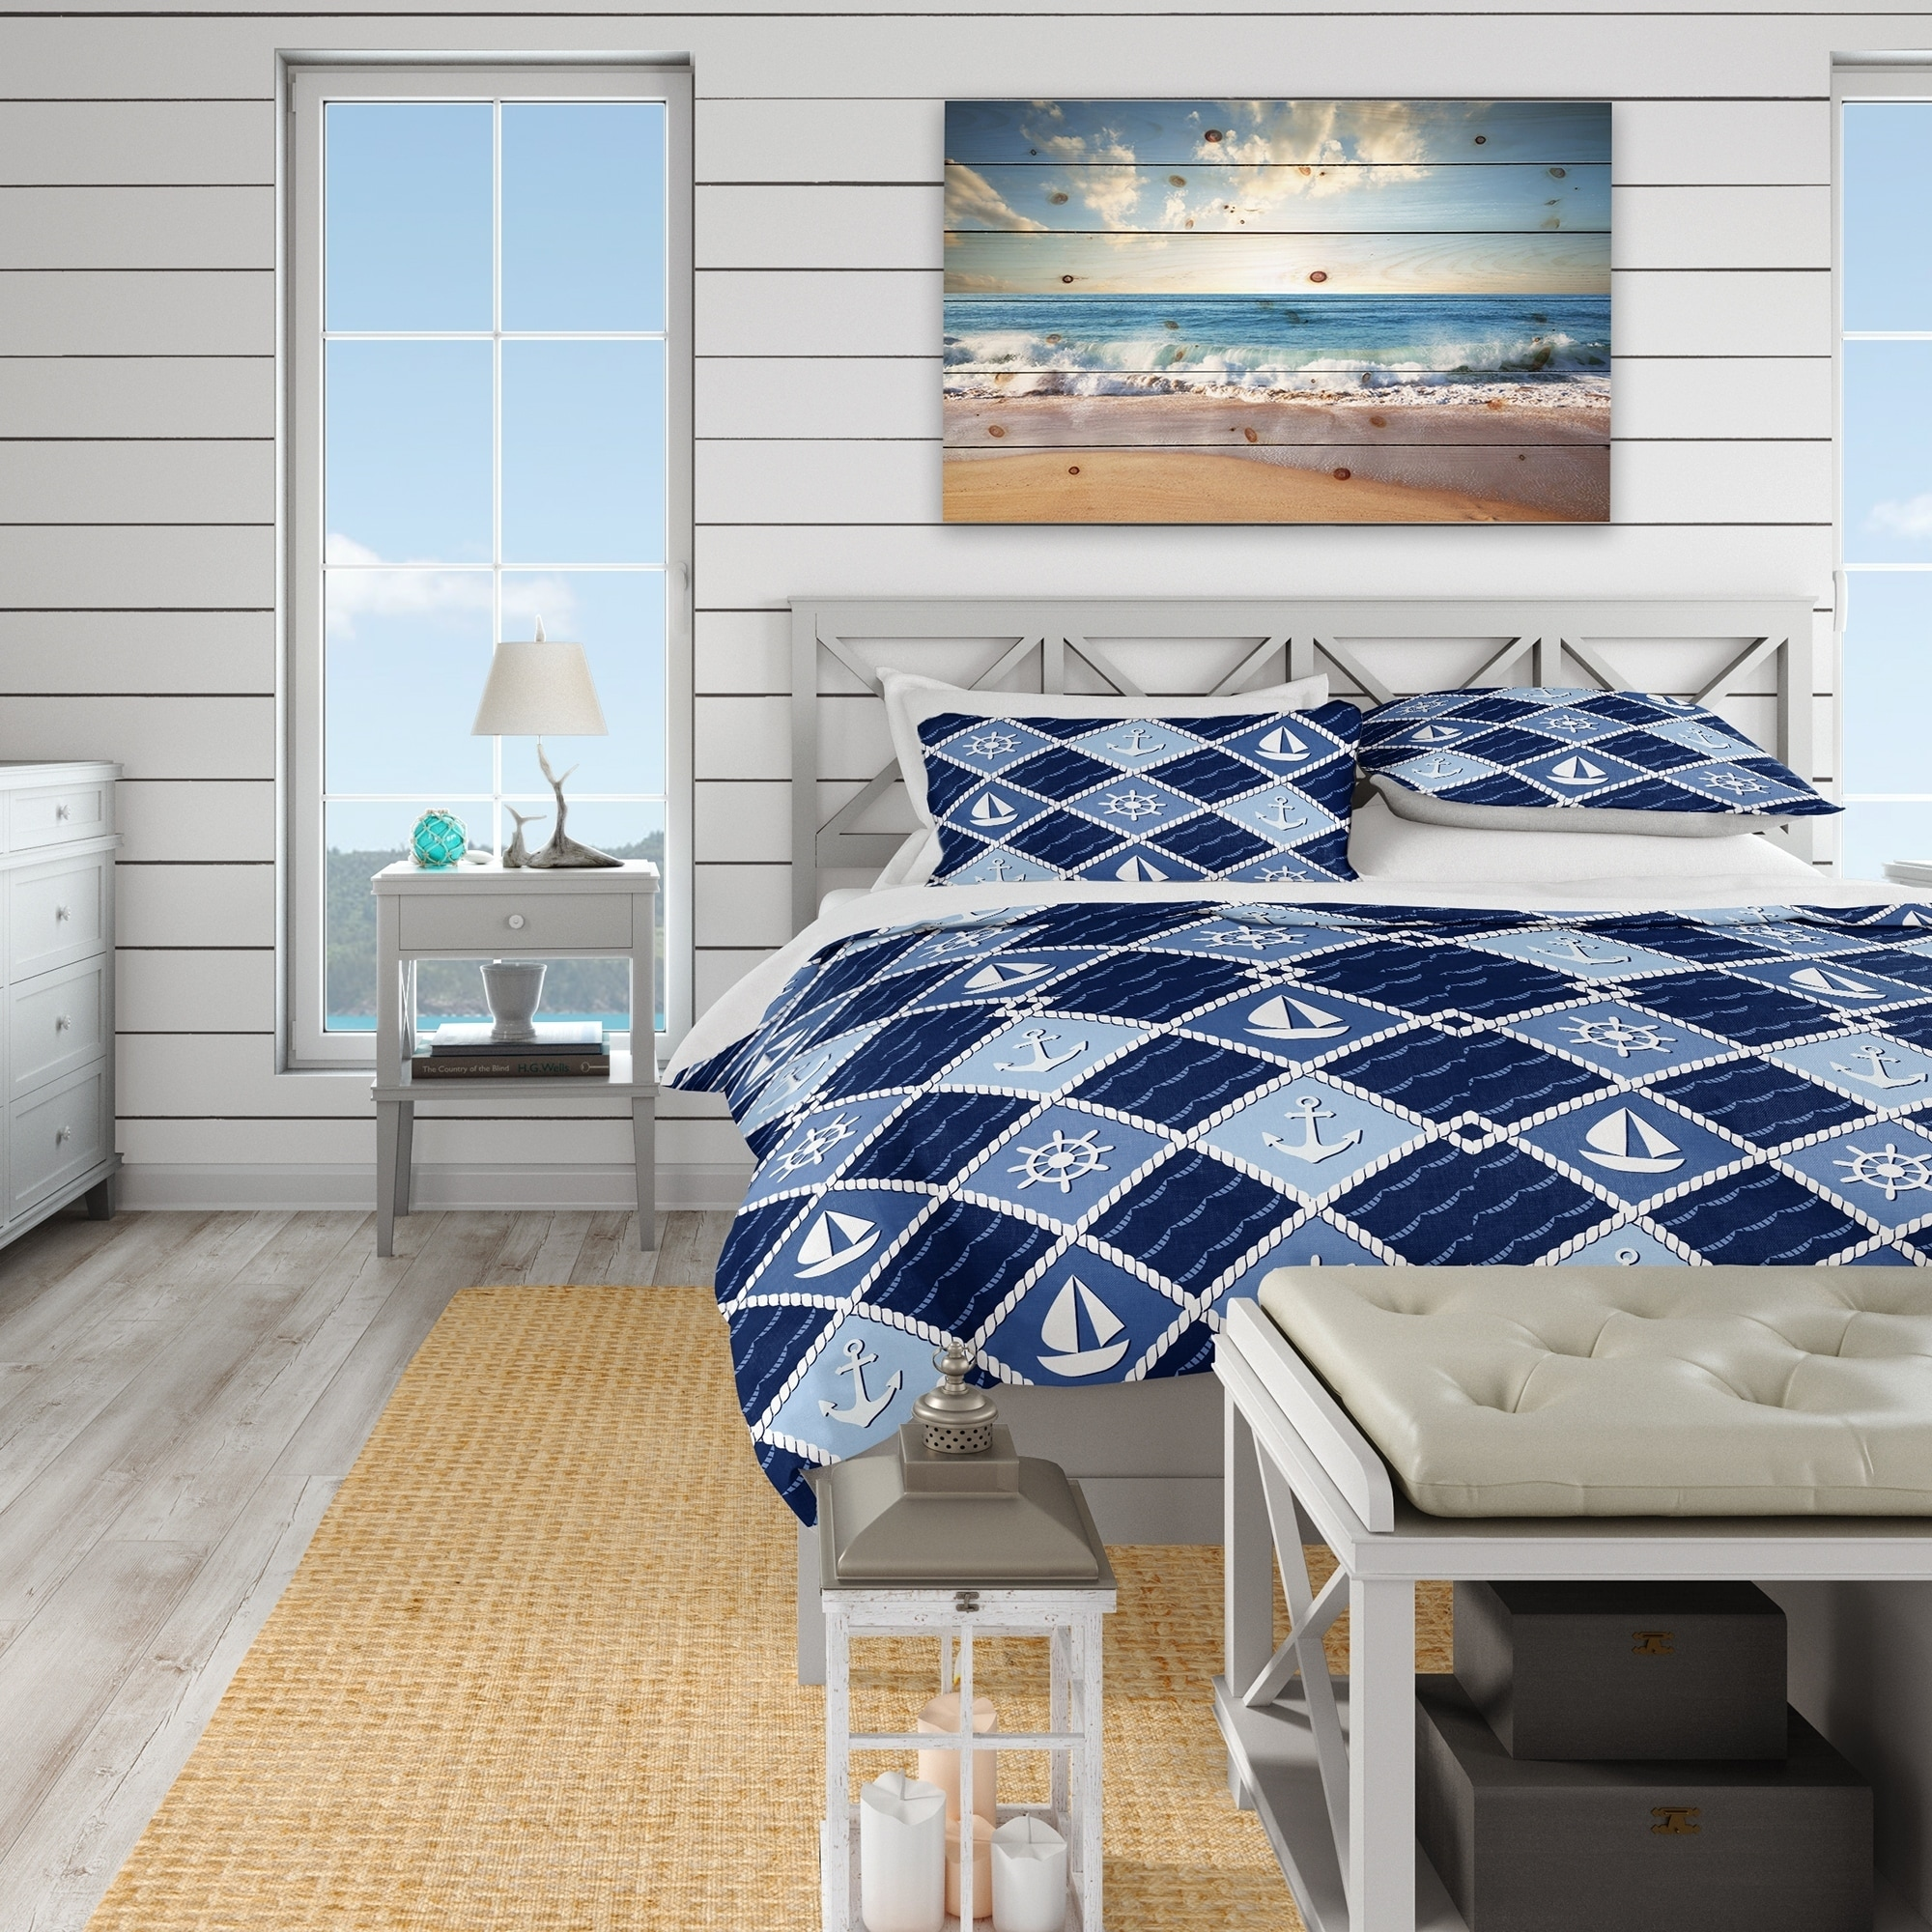 Anchor Sailing Boat Duvet Cover Pillowcases Set Quilt//Comforter//Doona Covers